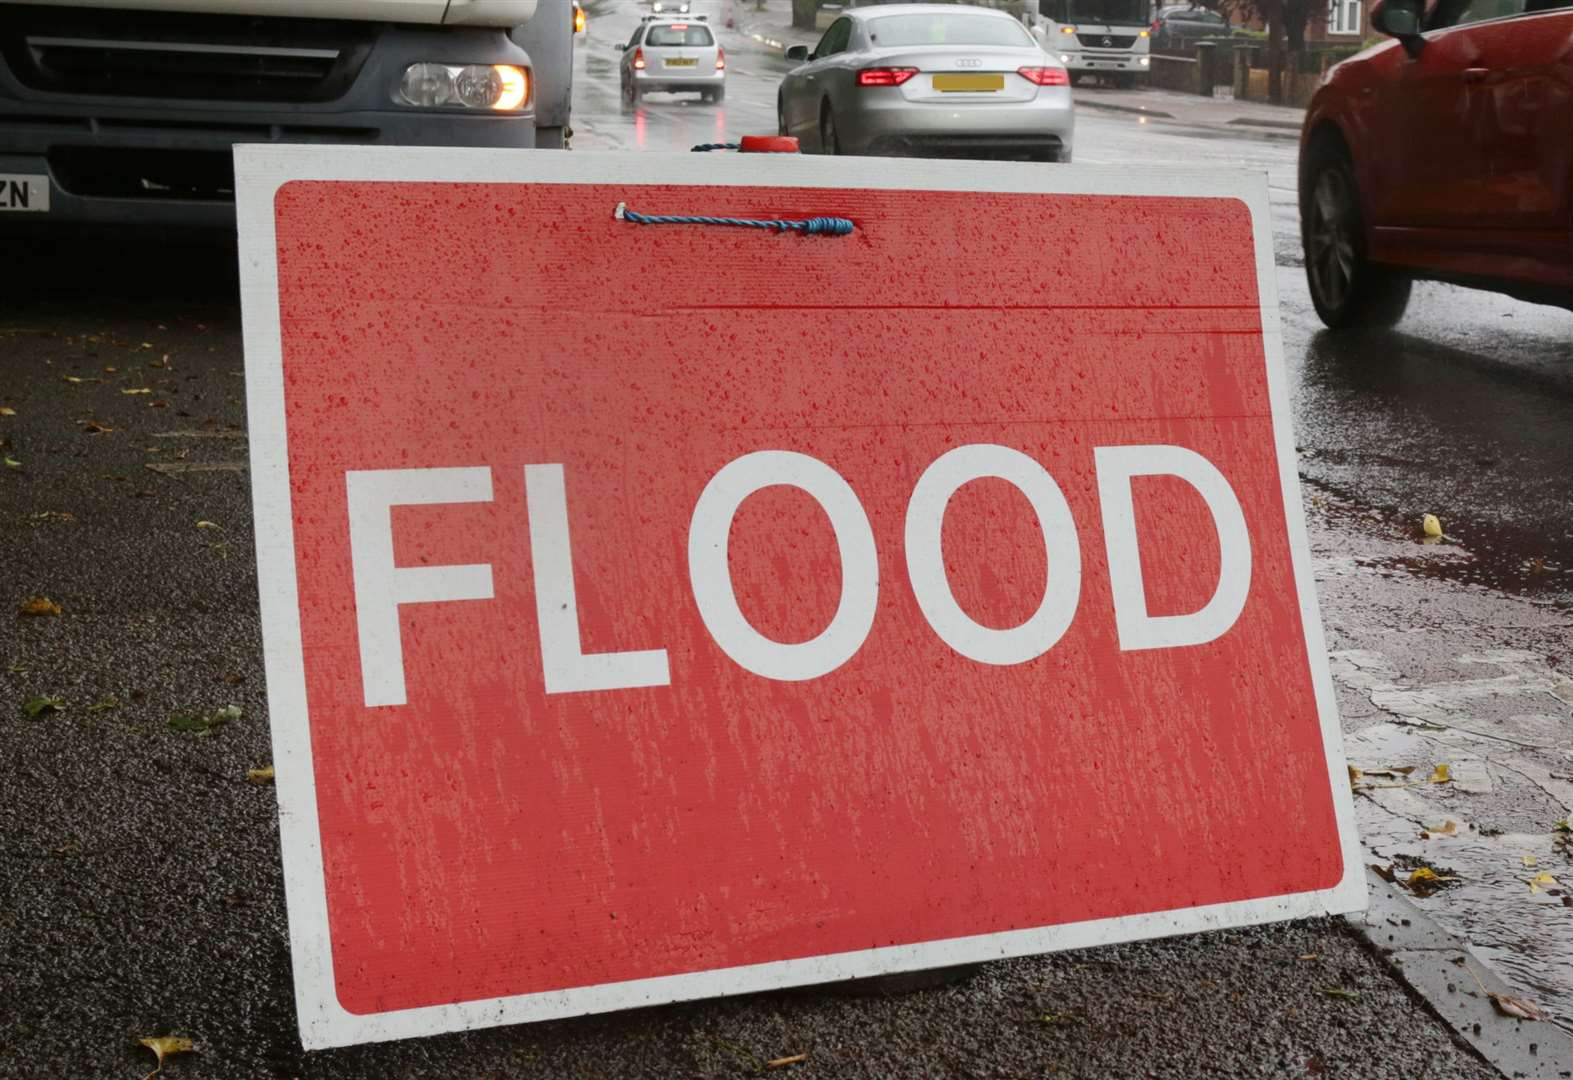 Further flood warnings issued in Kent tonight